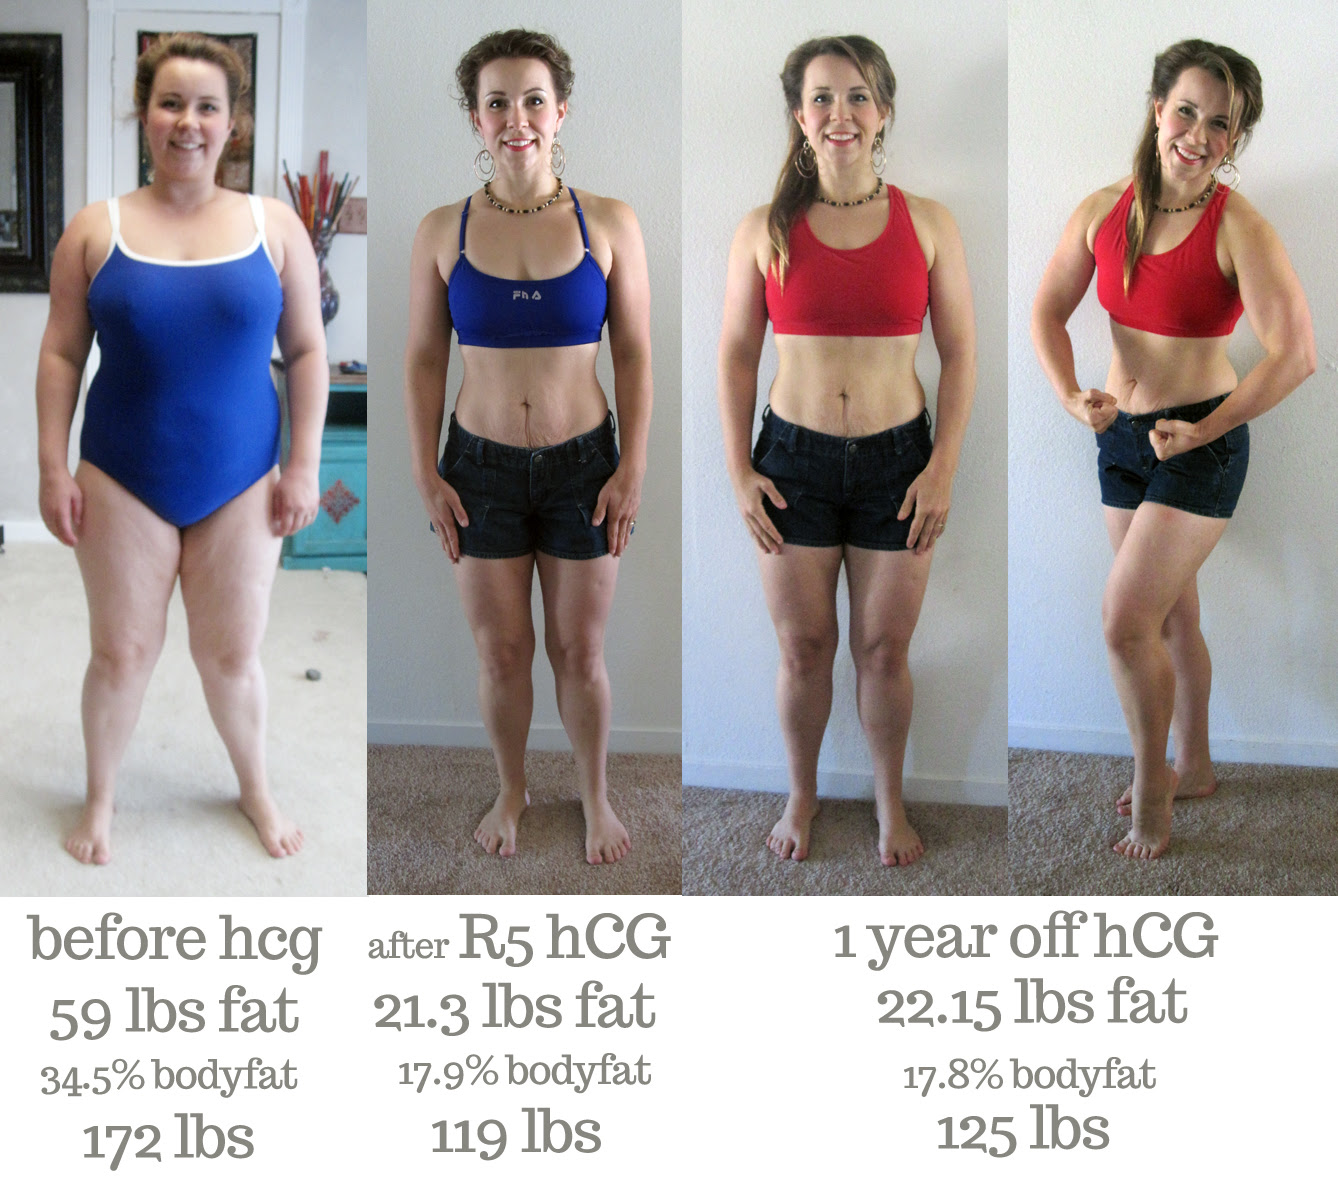 how much is hcg weight loss program